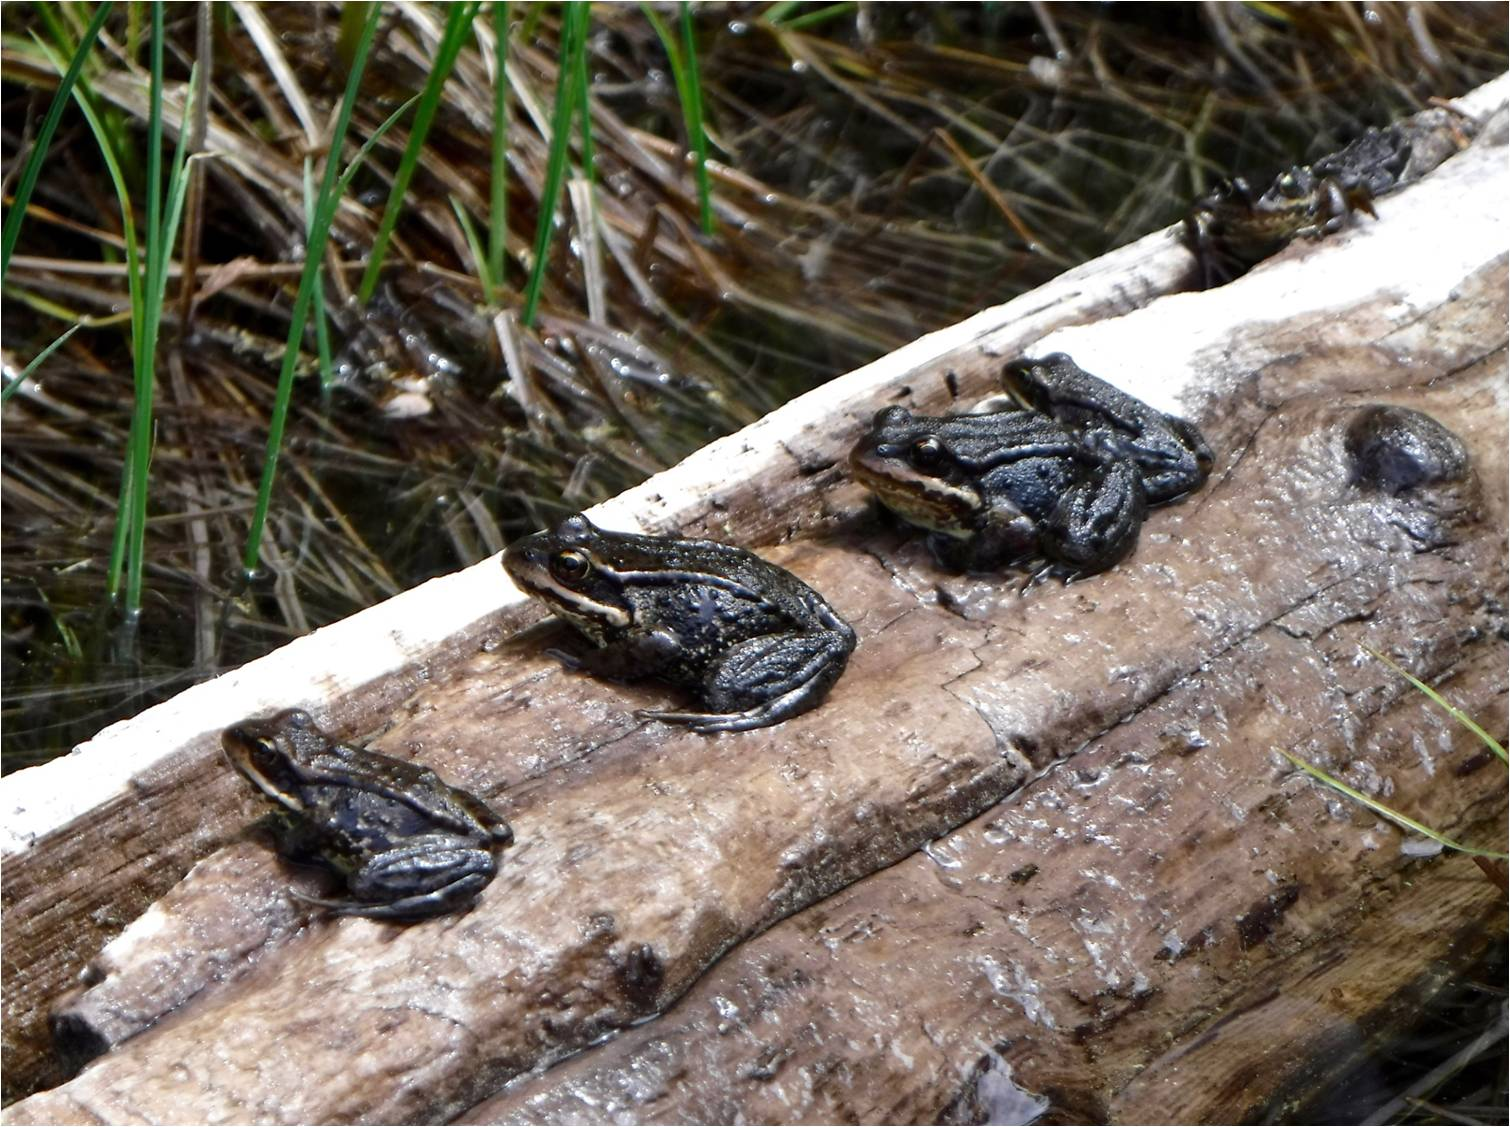 2-Frogs-on-a-log-David-Berger